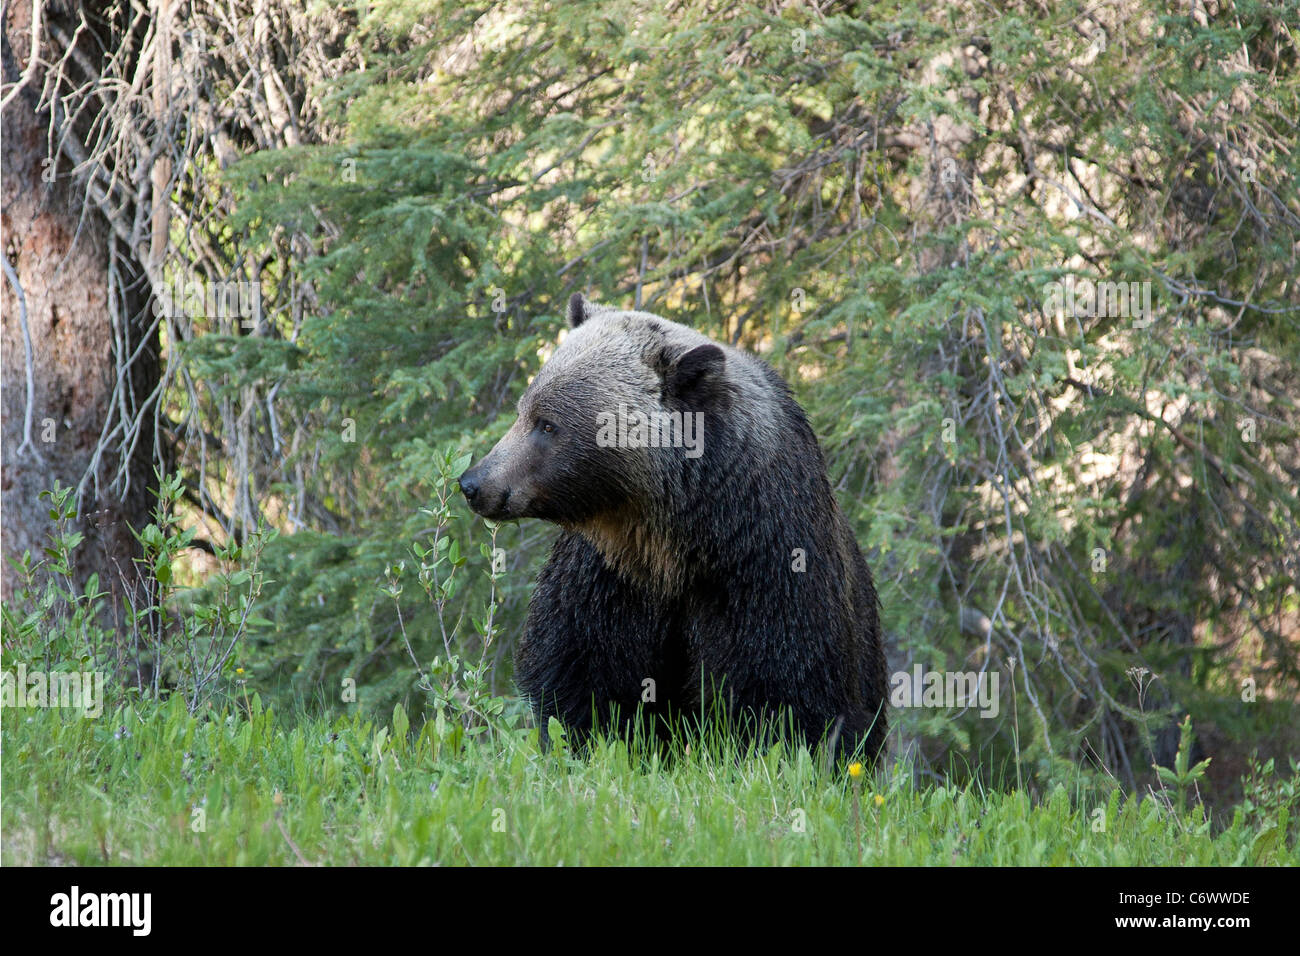 Grizzly Bear in Canadian Rockies - Stock Image